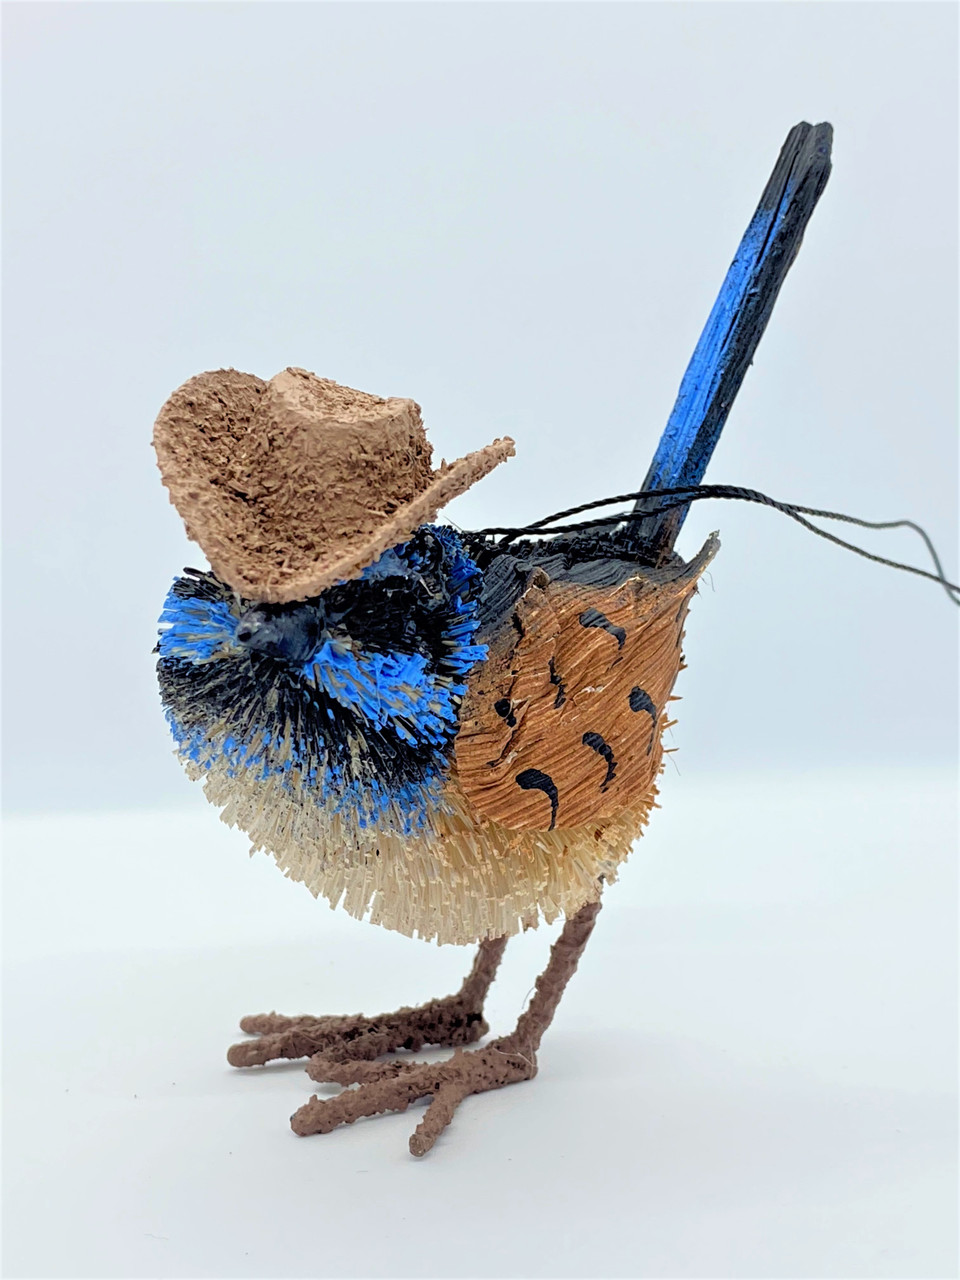 Gorgeous Aussie Akubra Blue Wren! Beautifully Designed and Crafted!